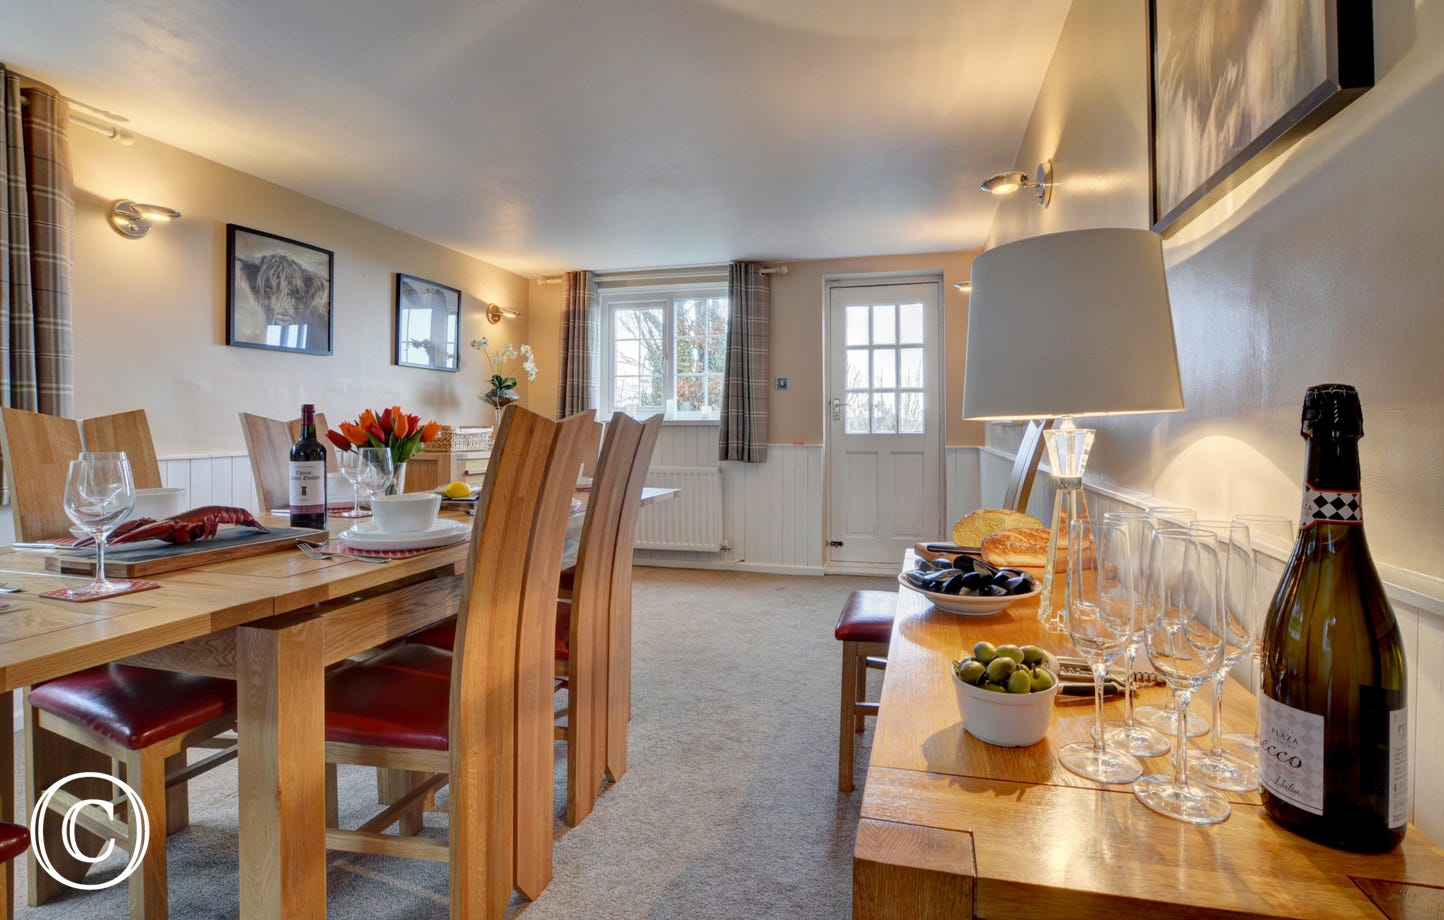 The spacious and stylish dining room is a wonderful space to get together with family and friends